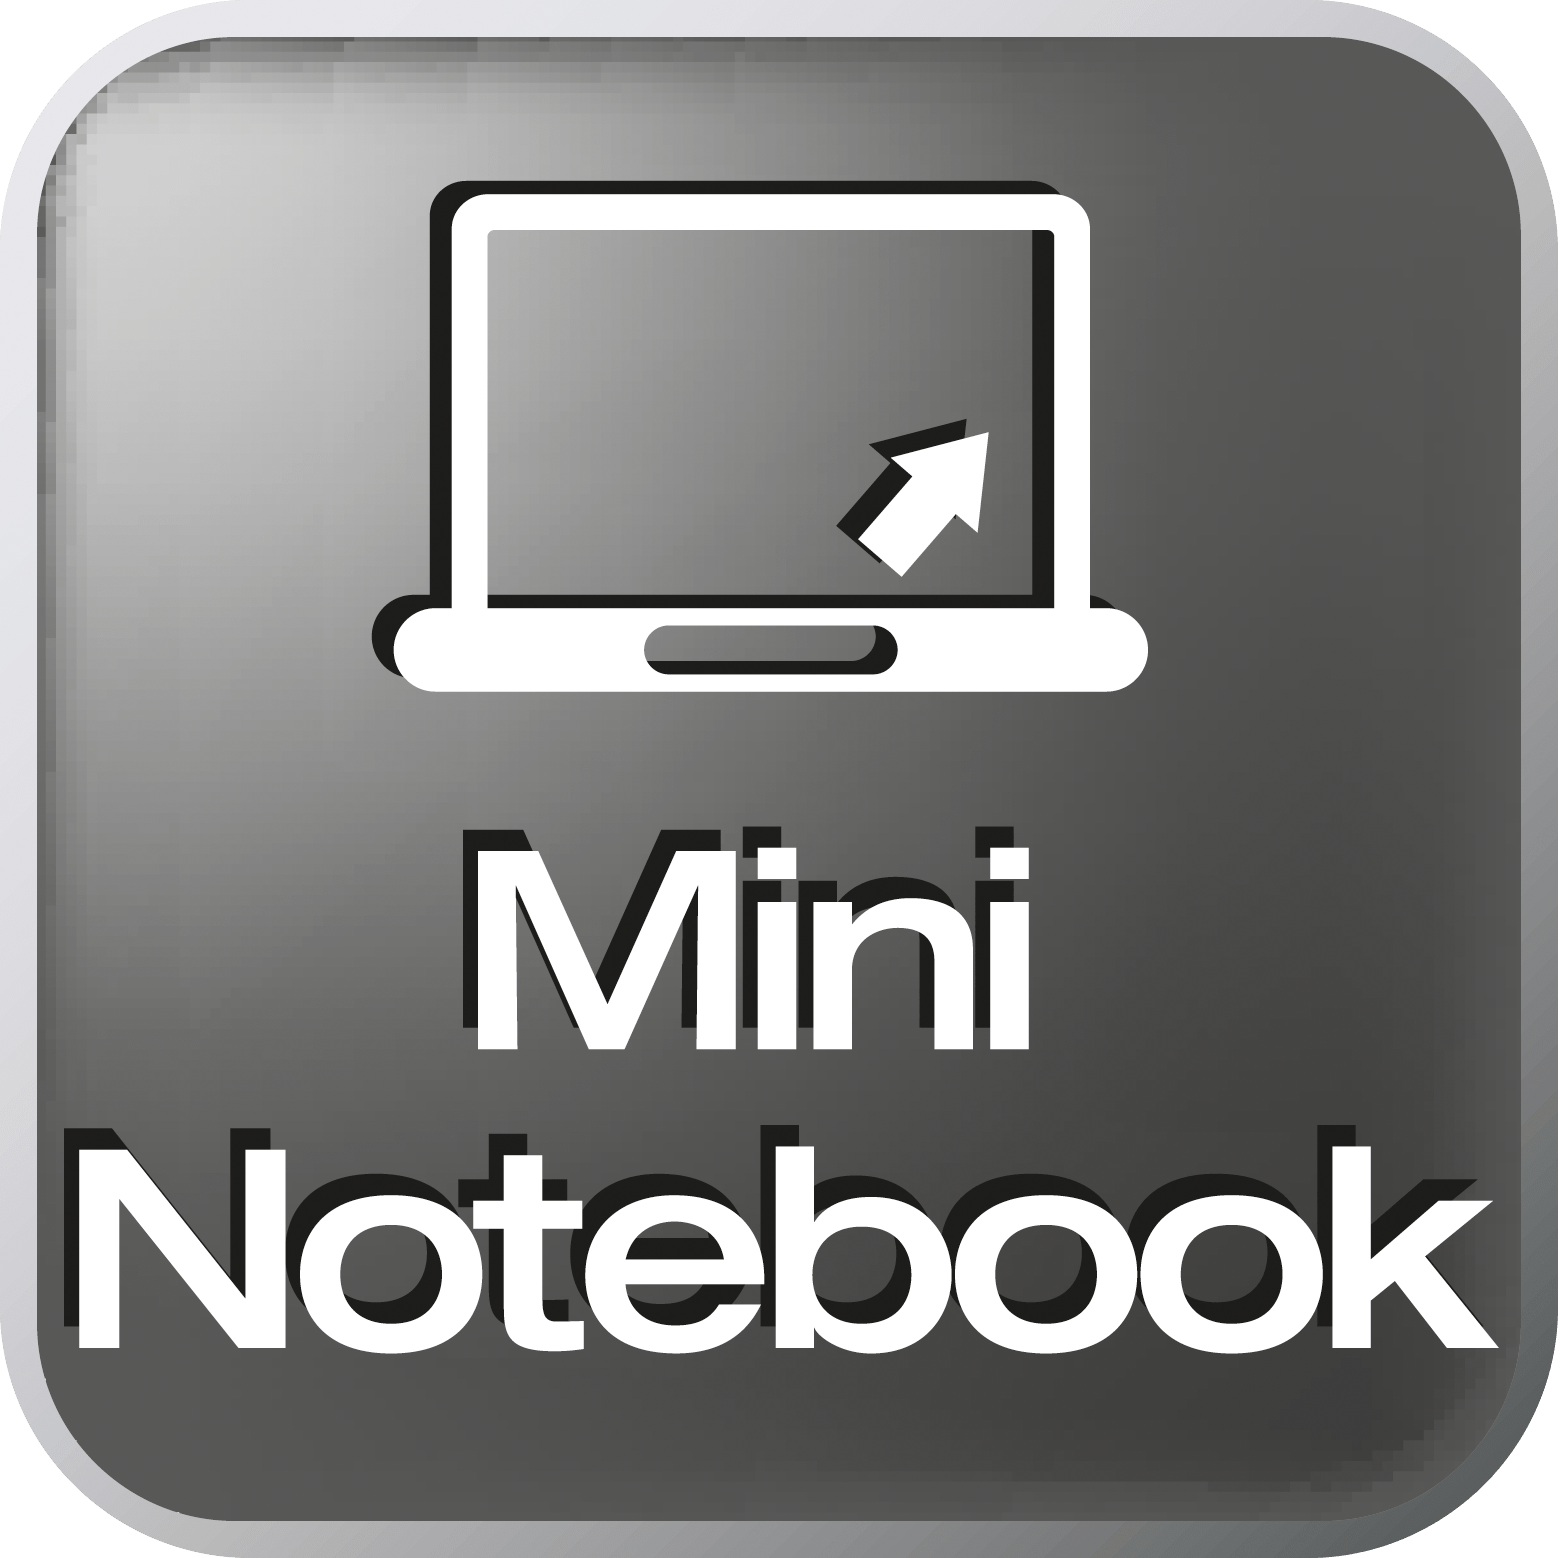 https://cdn-reichelt.de/bilder/web/xxl_ws/D400/WENT_MINI-NOTEBOOK.png